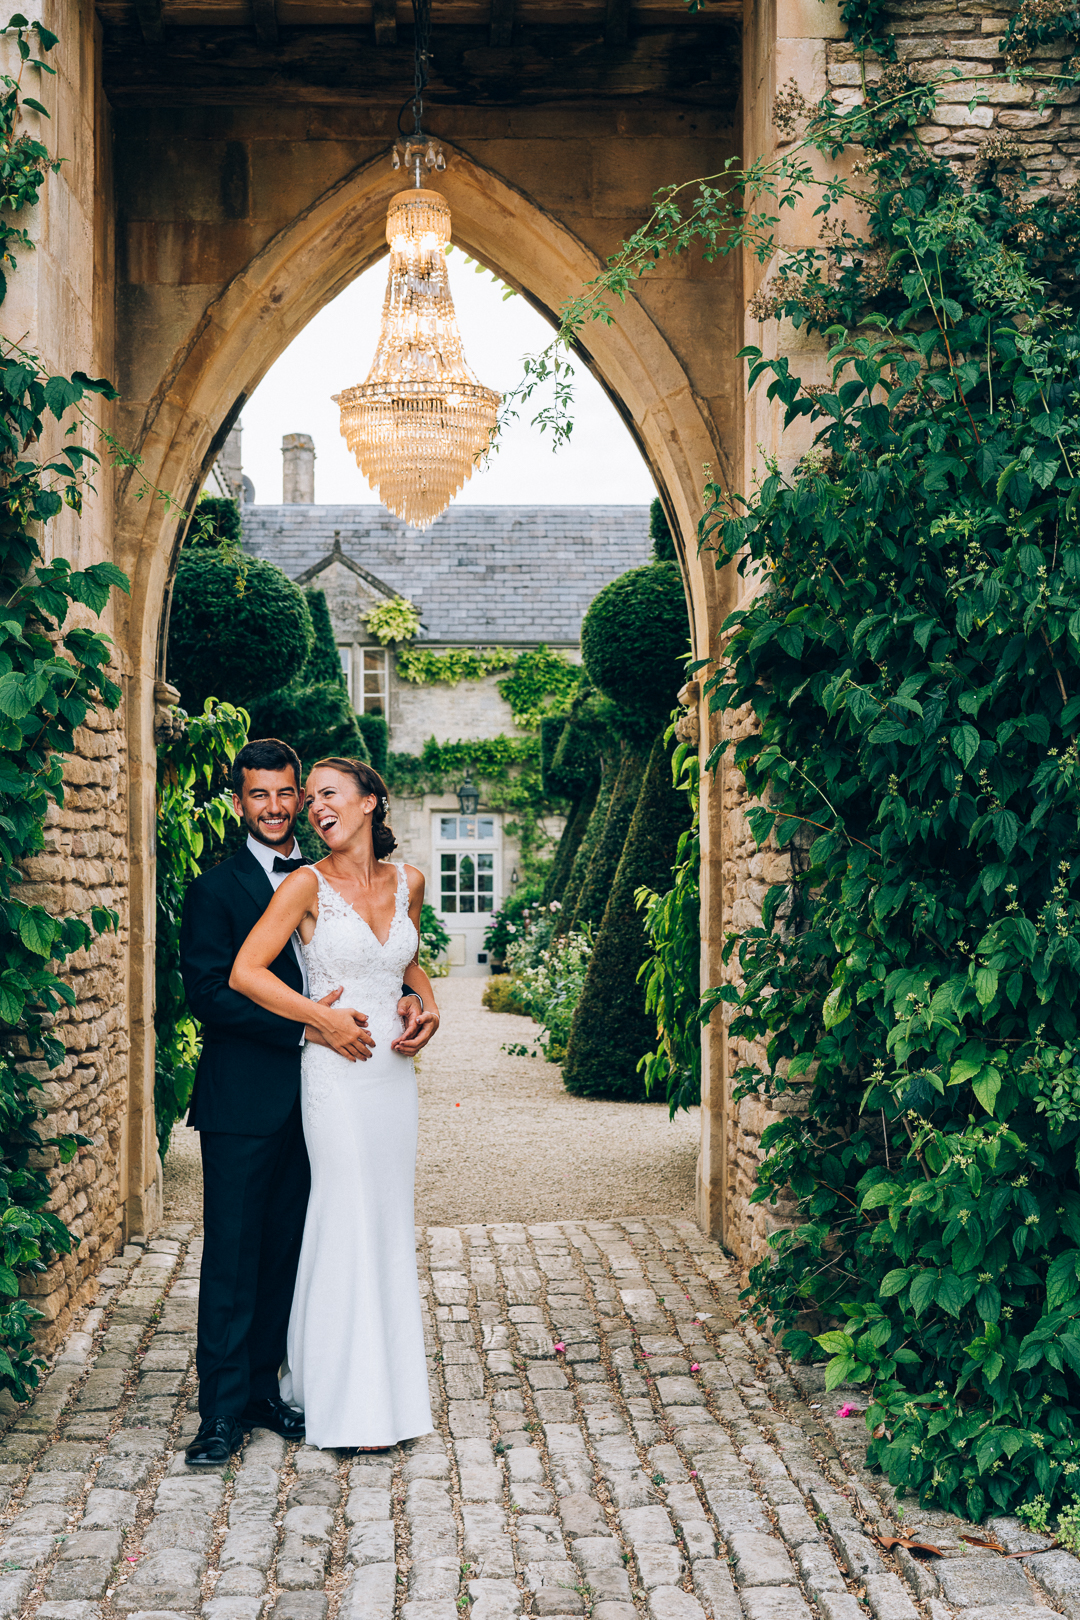 bride and groom laughing under the chandelier arch at the lost orangery image